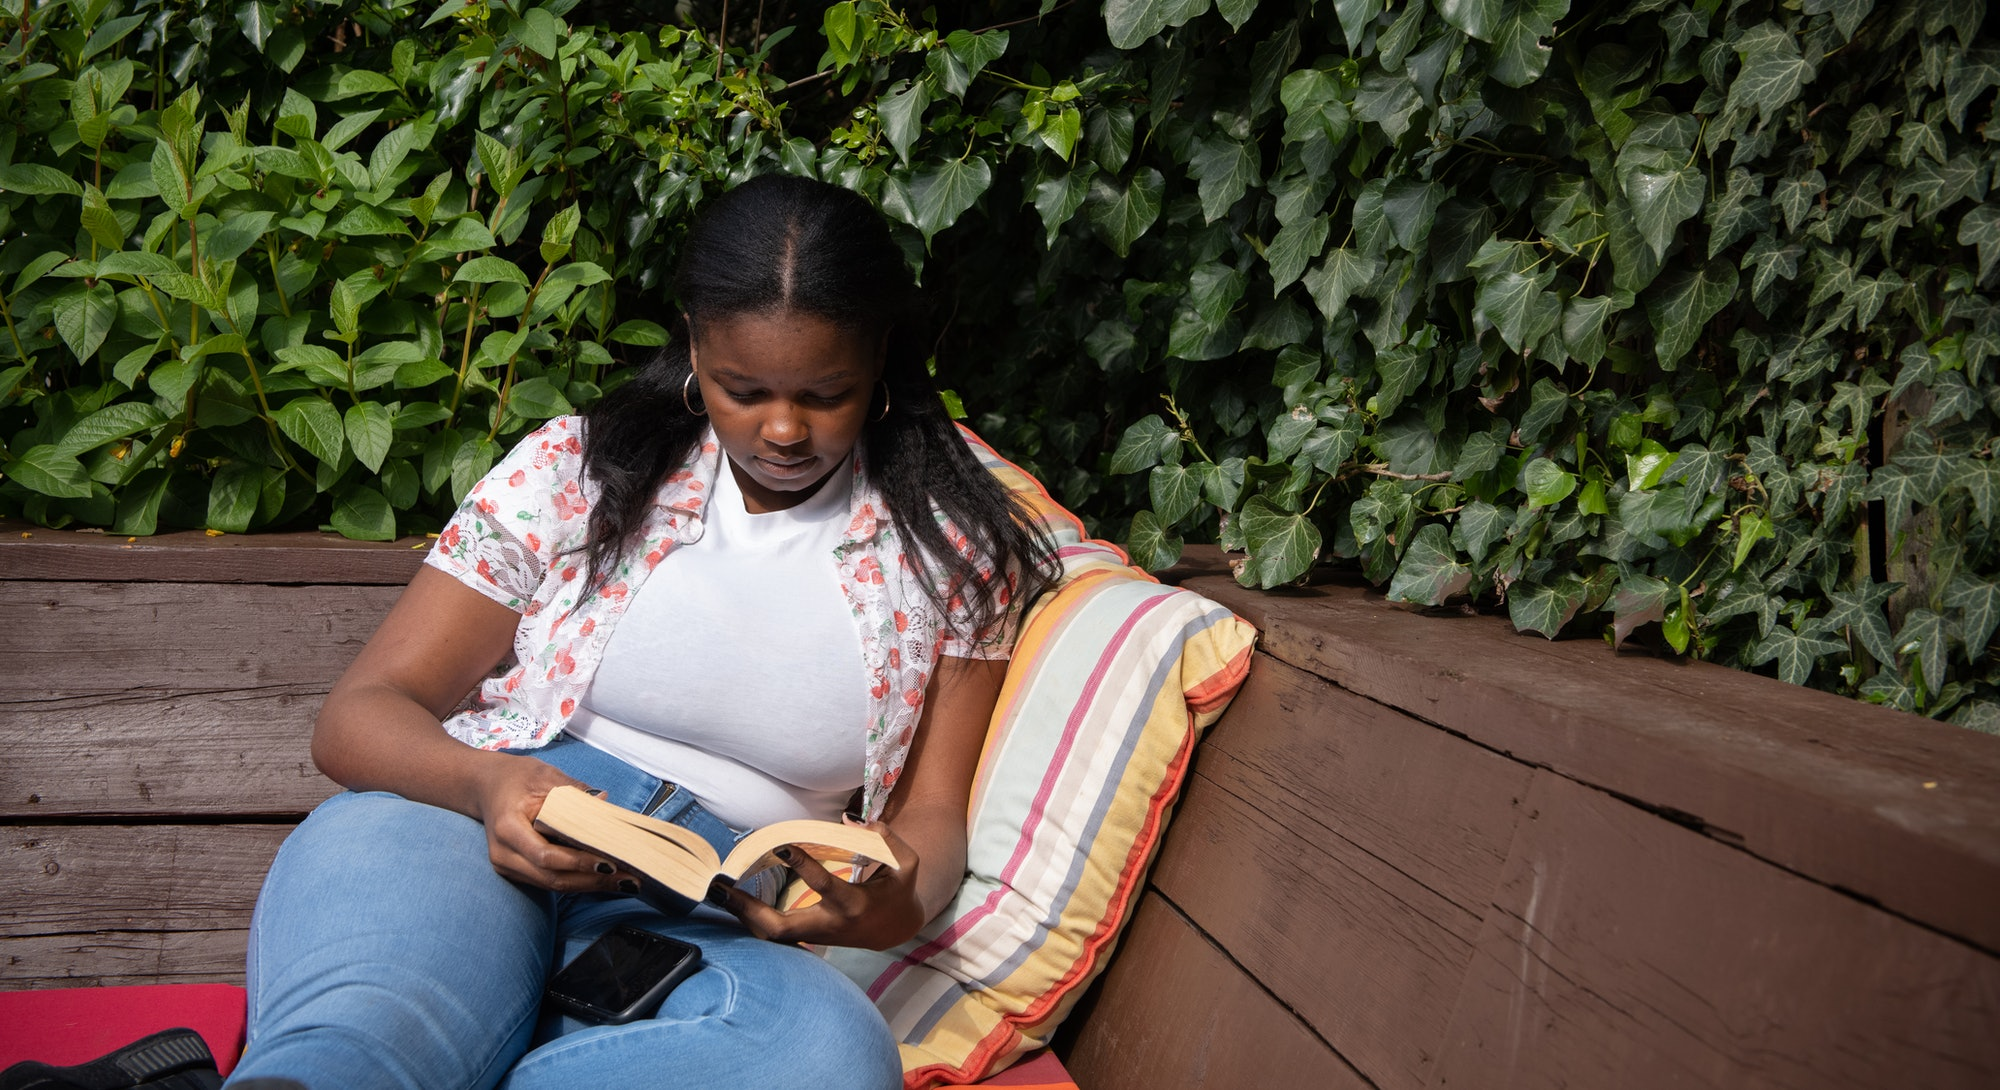 Young woman sitting on a deck in the garden reading a book